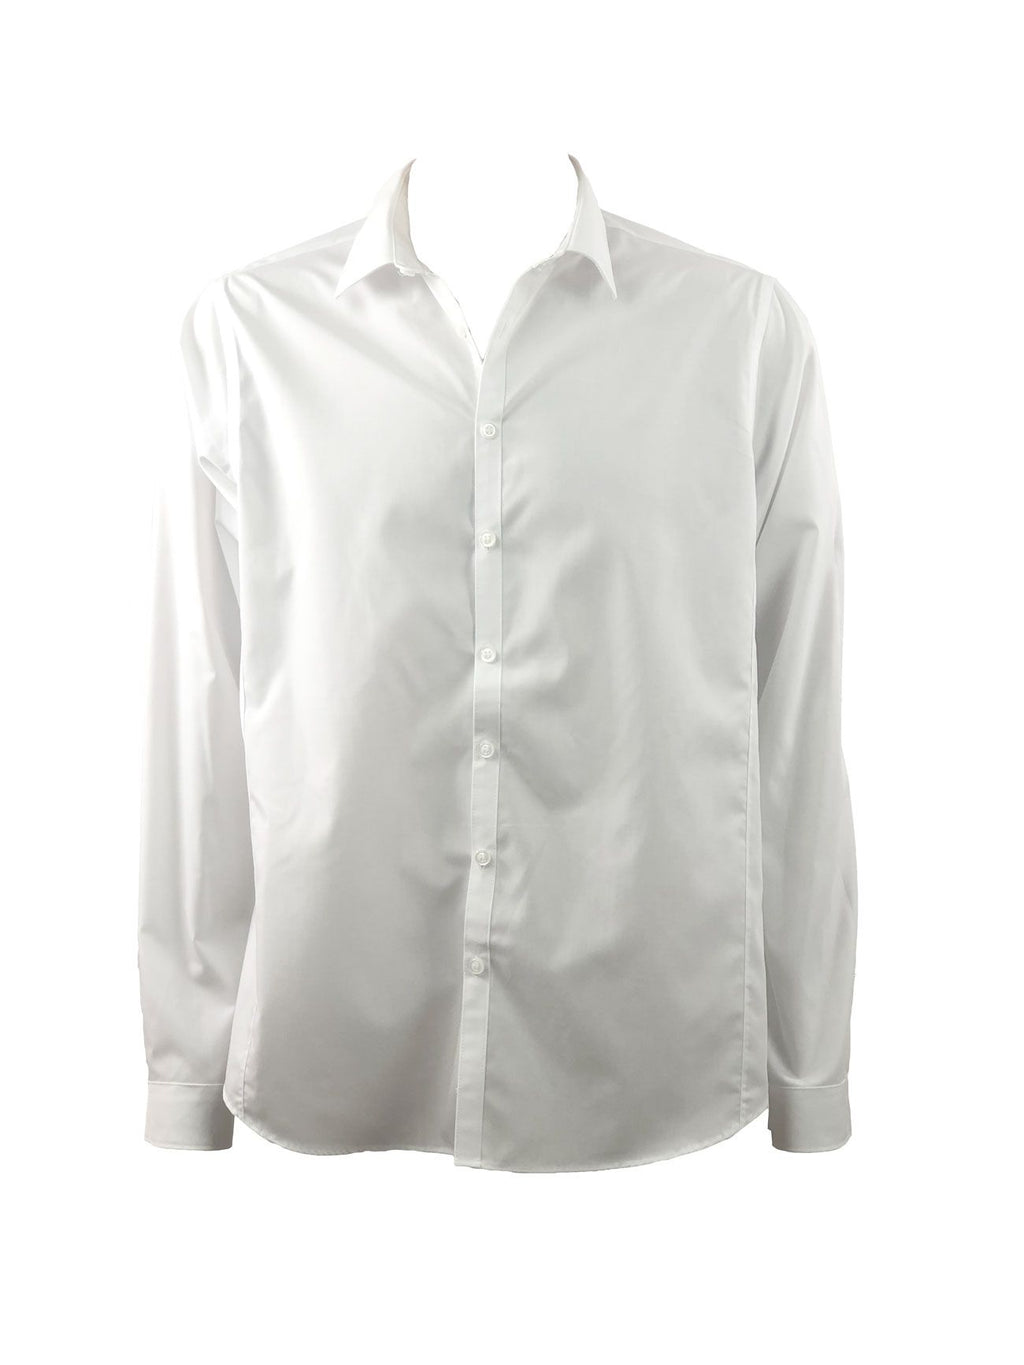 Chemise Homme d'occasion MARKS & SPENCER - Taille : 40 - L